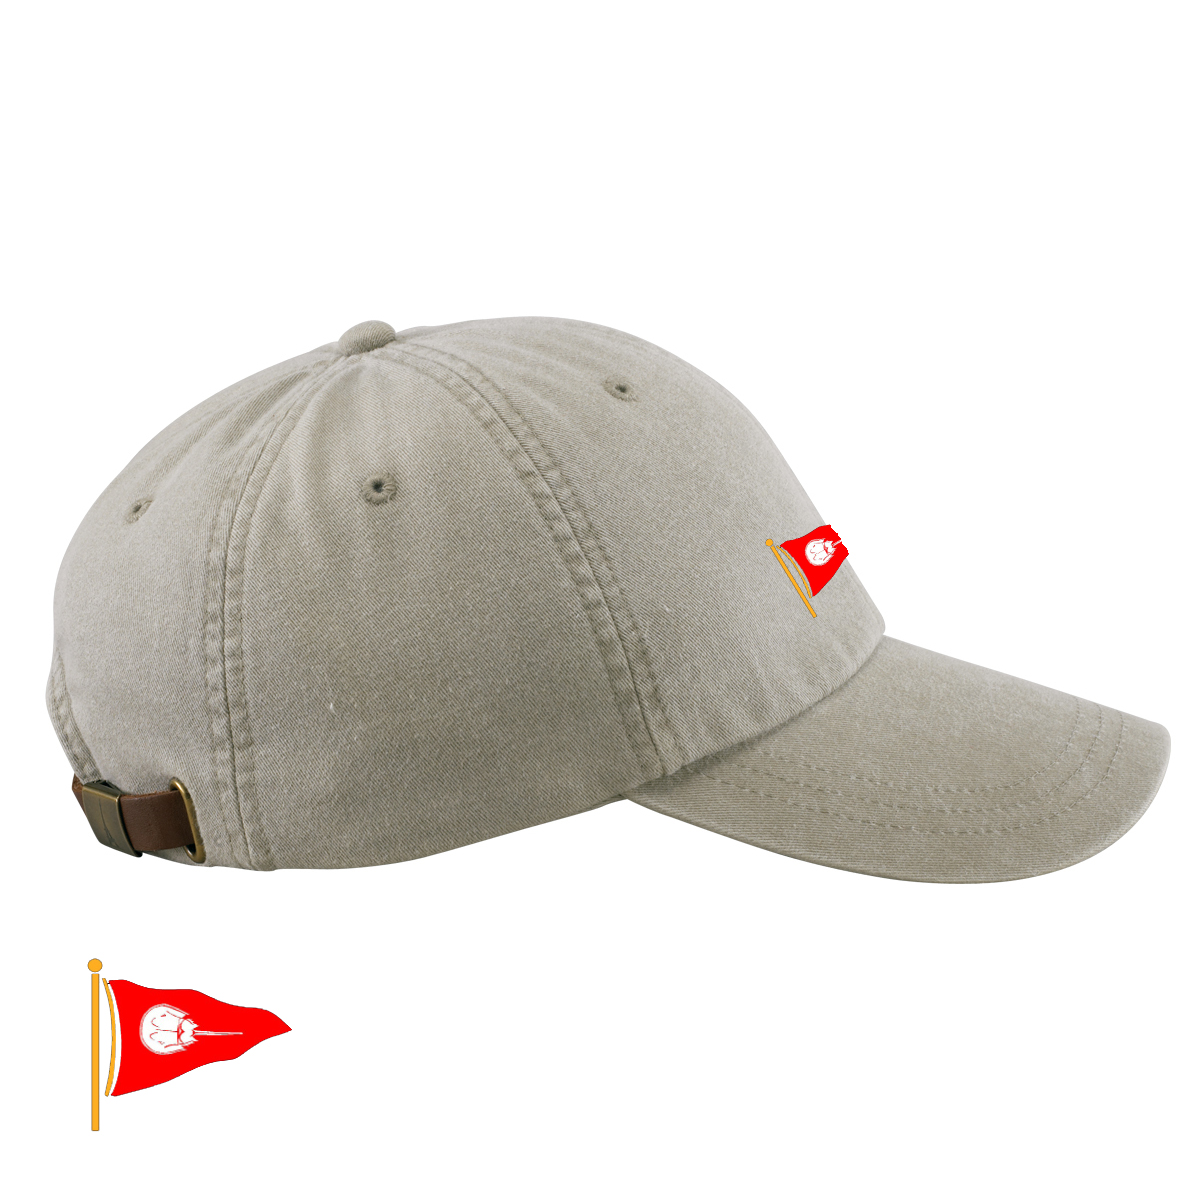 STAGE HARBOR YC - HAT